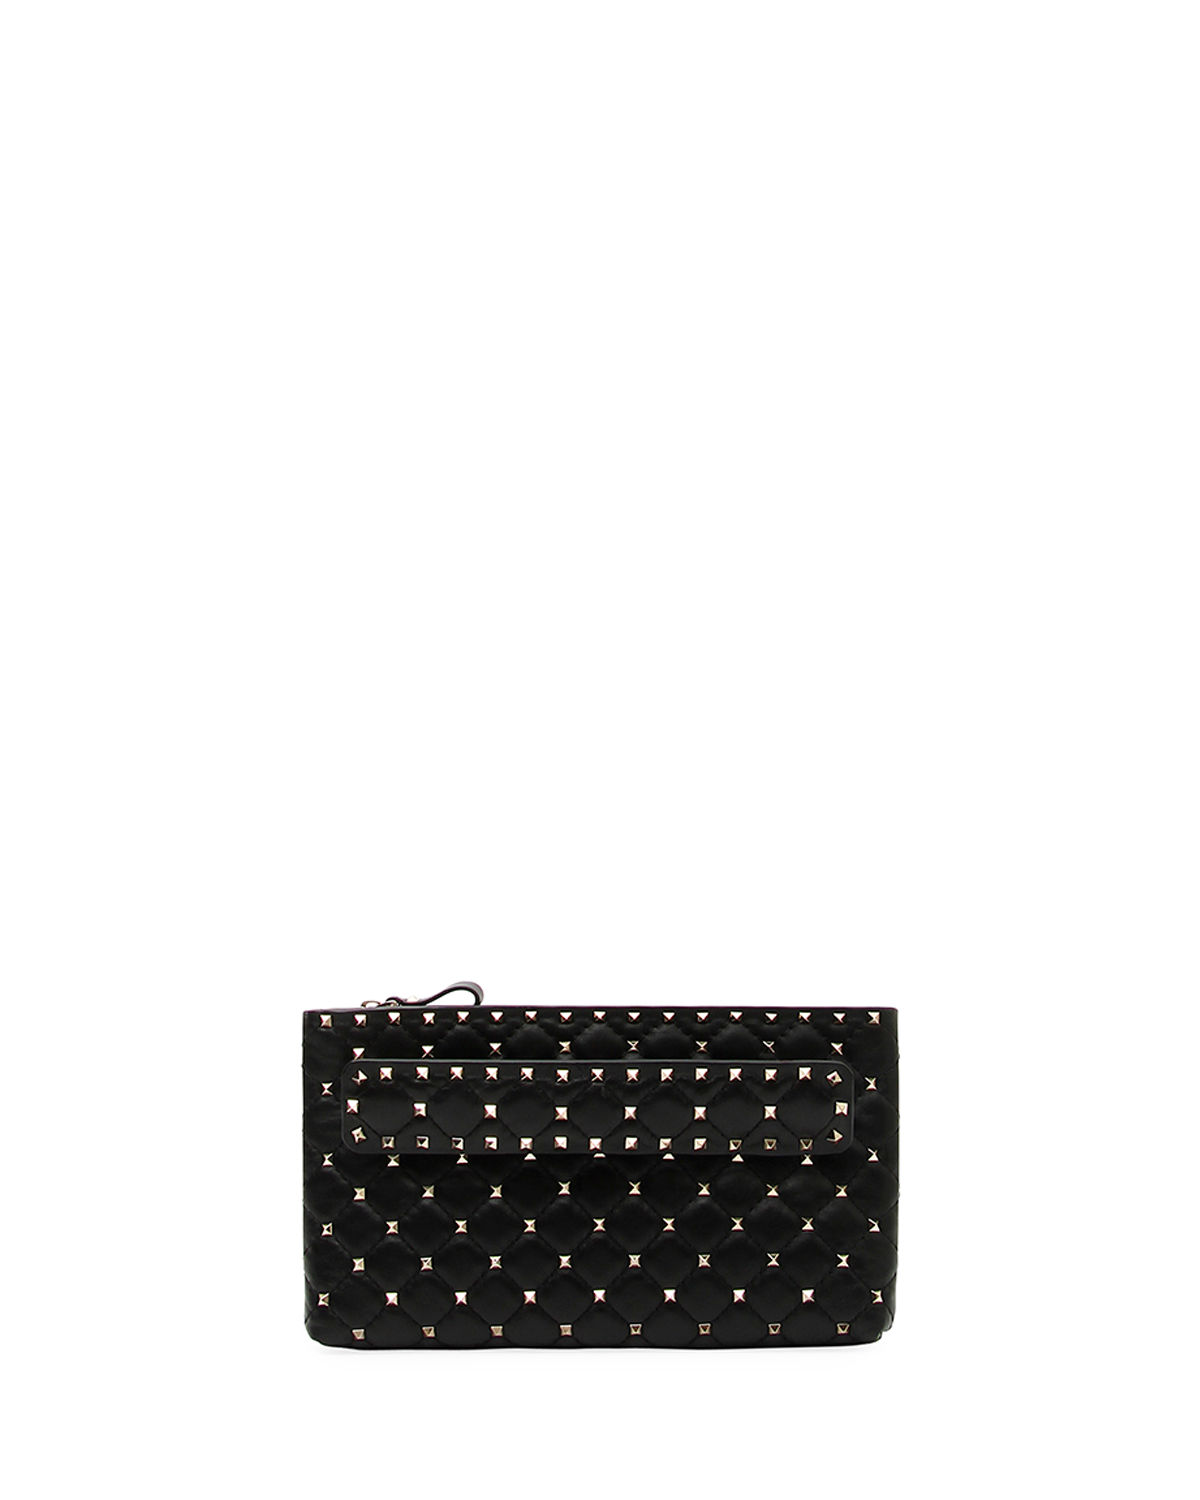 aa8f29076 Valentino Rockstud Spike Quilted Leather Clutch Bag In Black ...